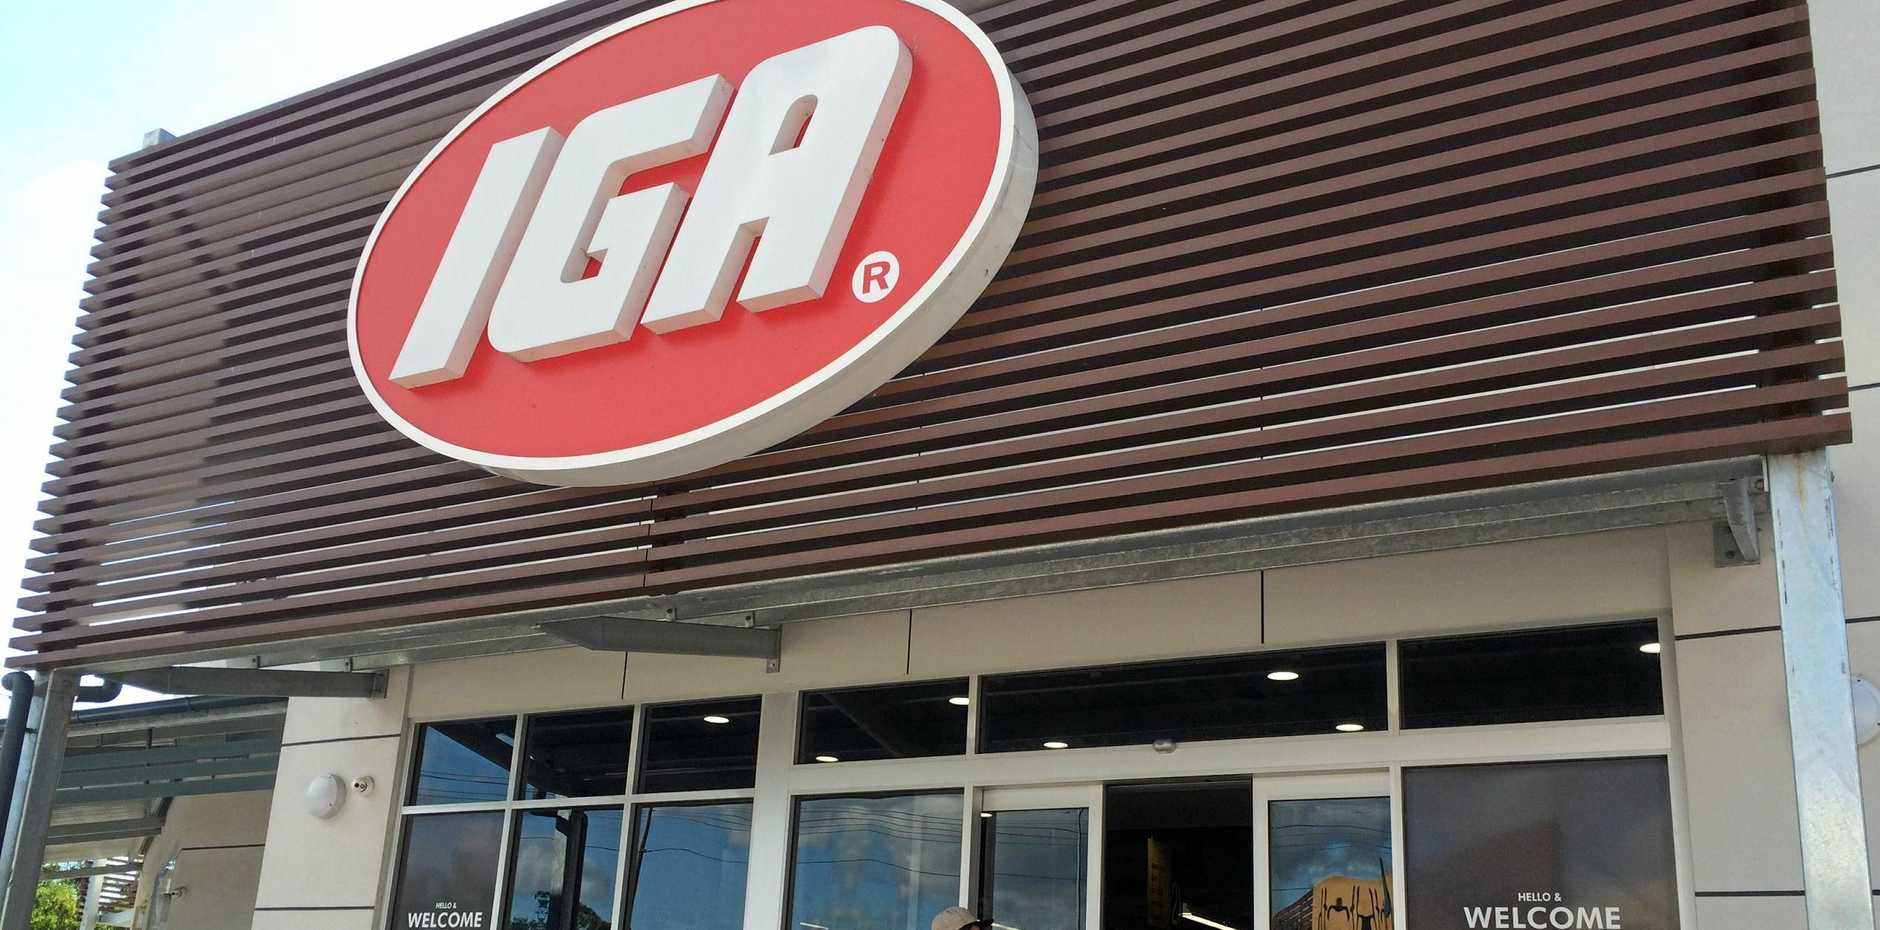 Everfresh IGA are opening a new store at North Buderim. The grocery brand, along with nine other businesses on the Sunshine Coast, is advertising for multiple roles.